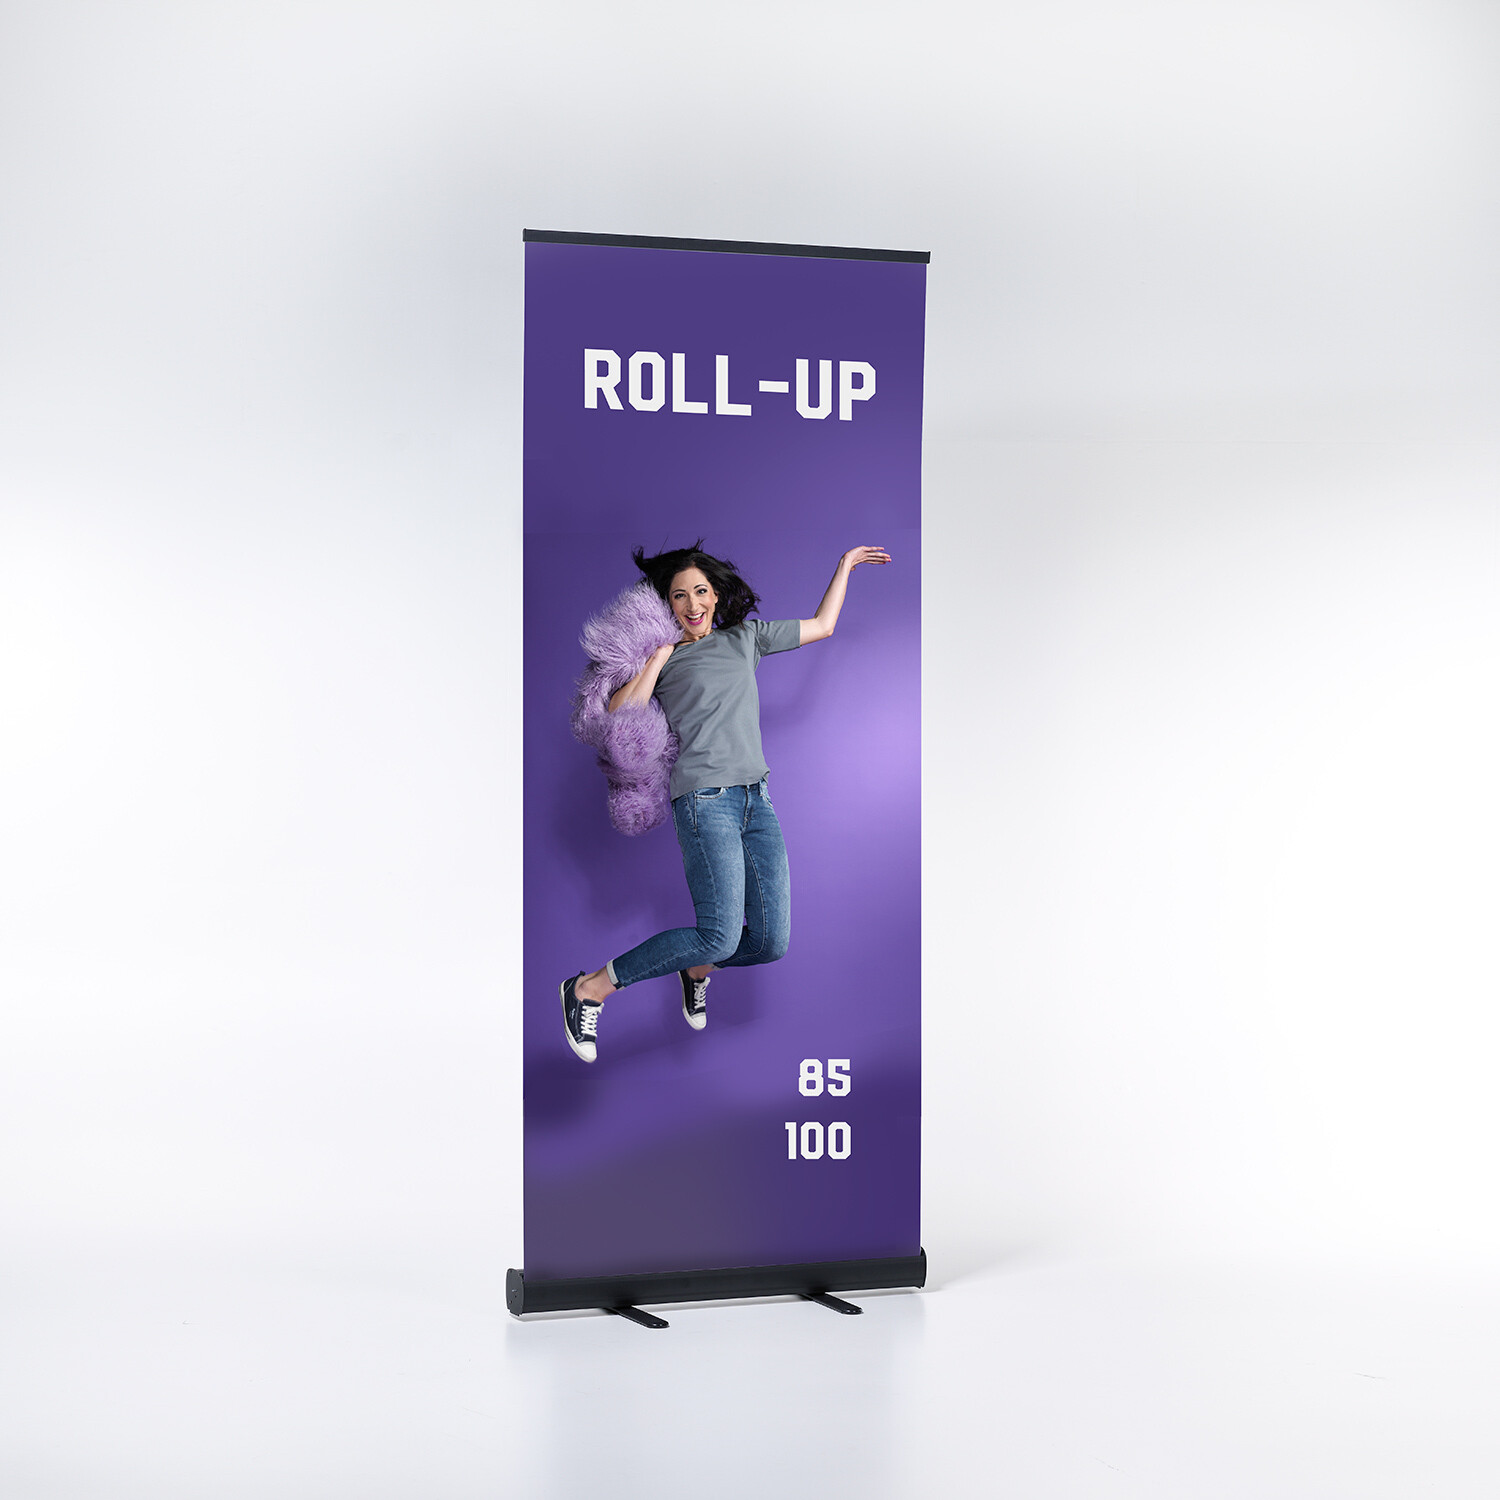 100 x 200 cm – Roll-up